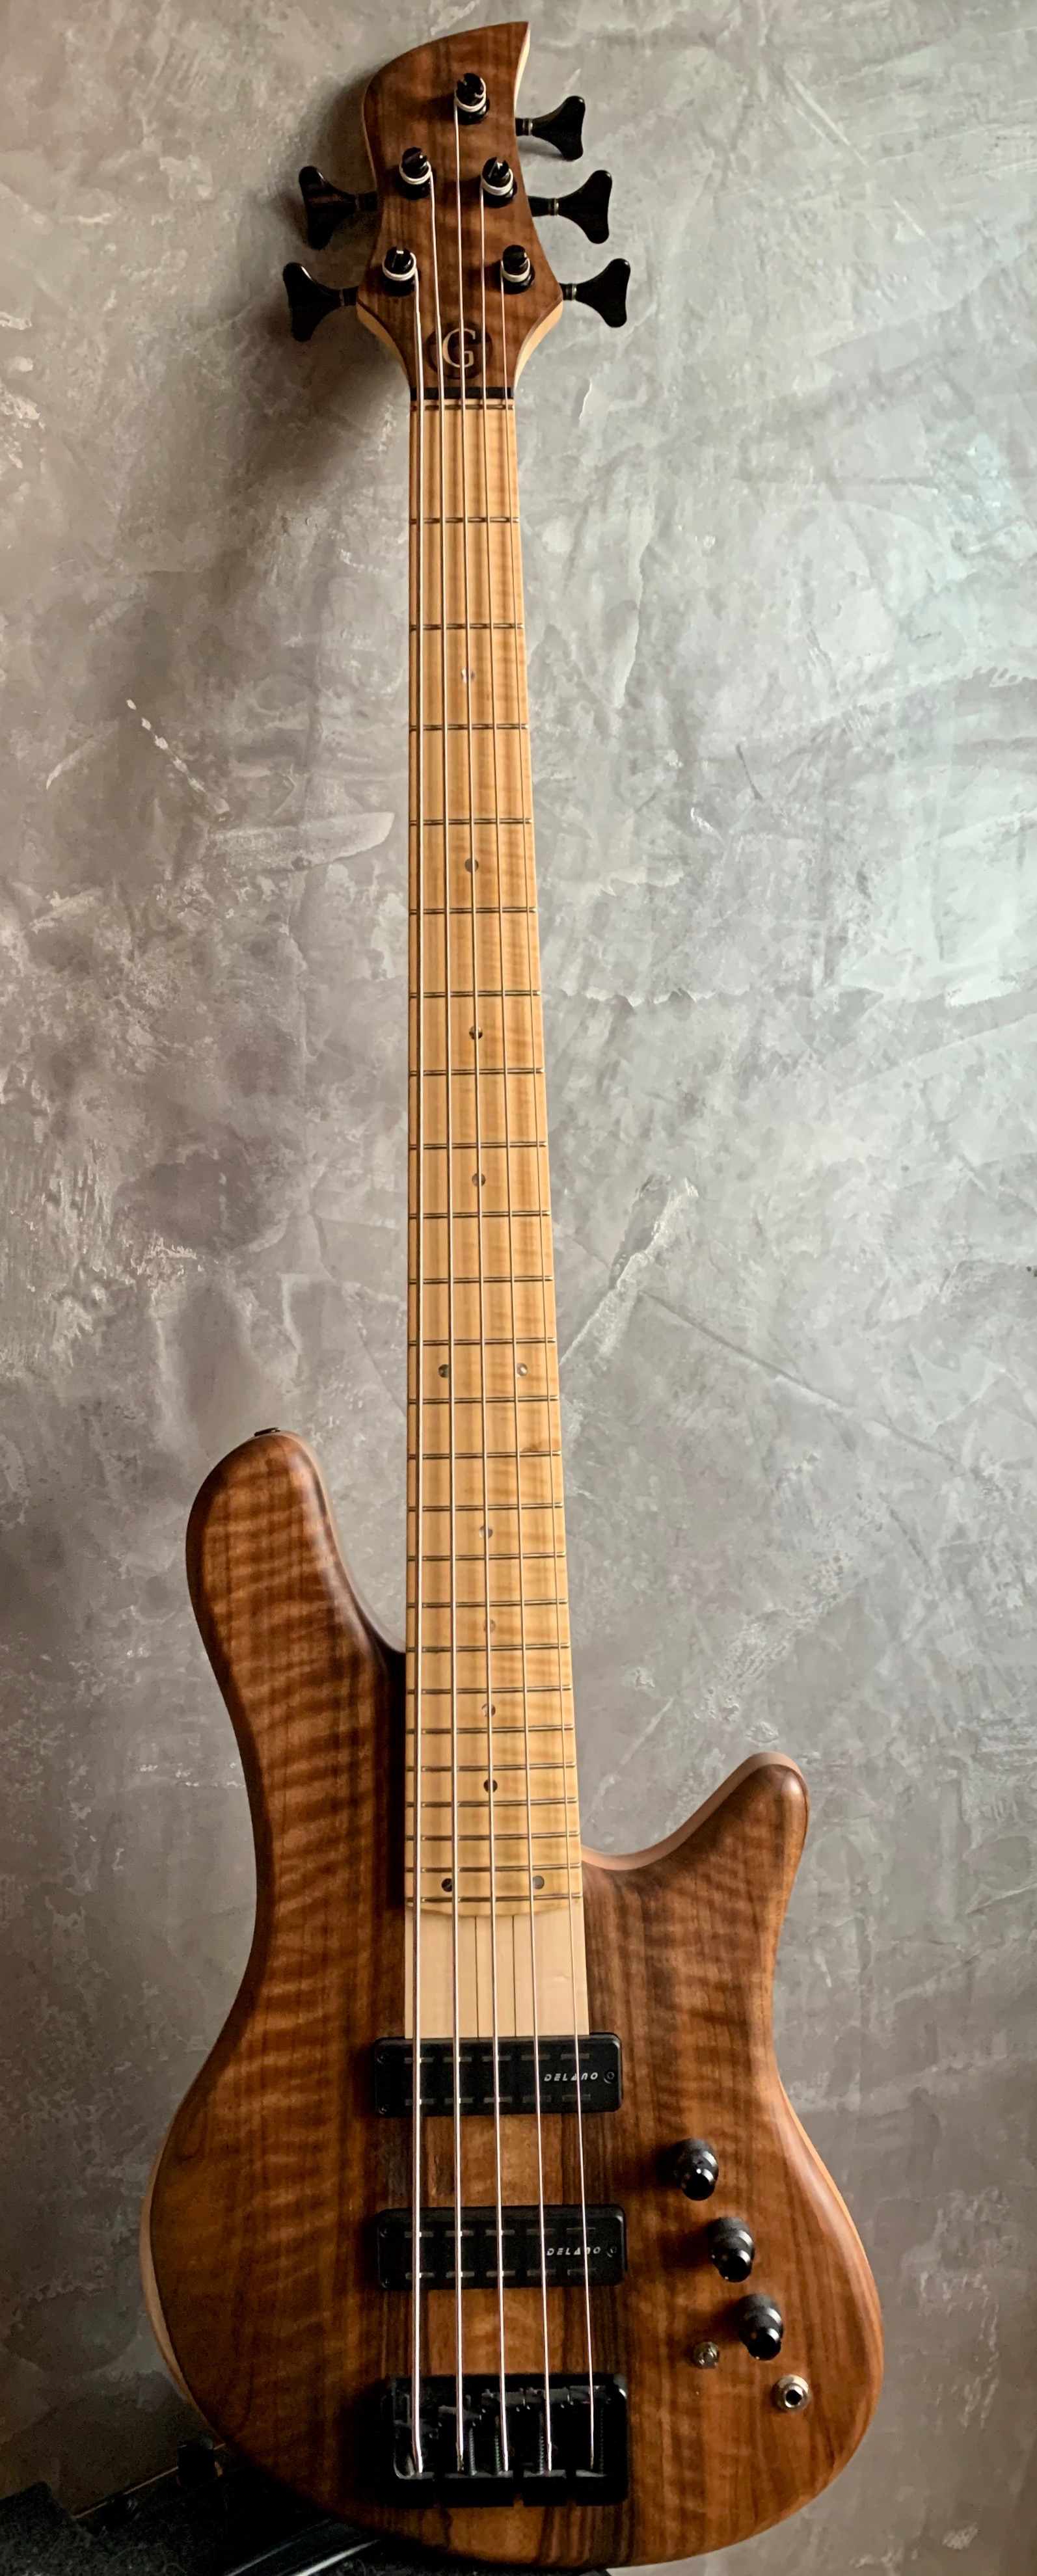 Gallucci Bass aventure